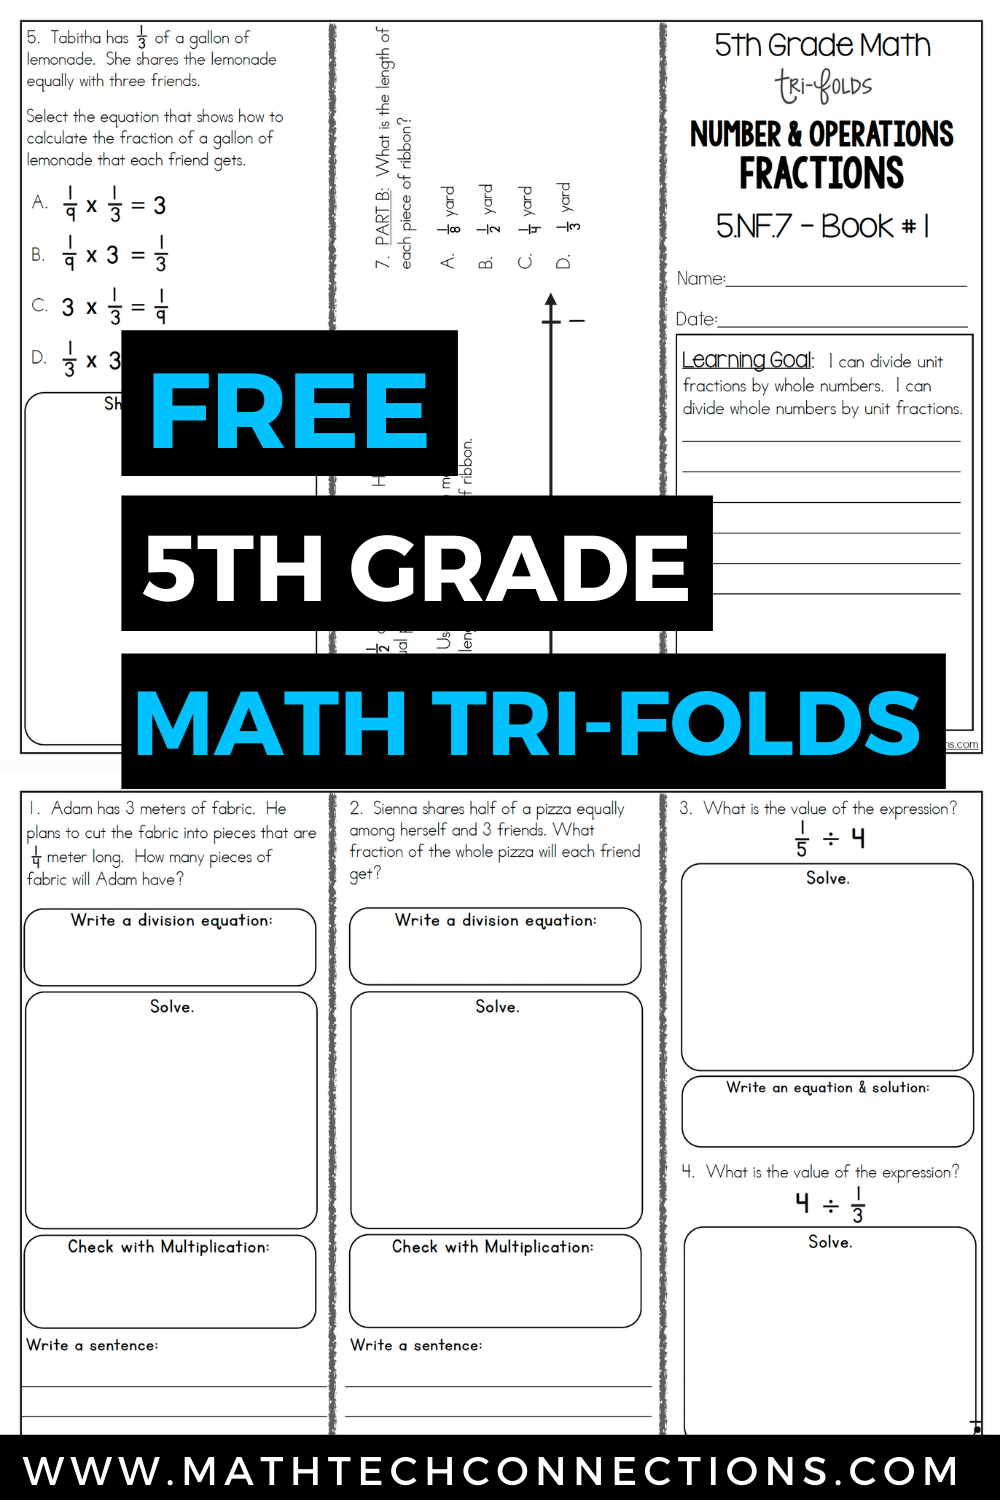 5th Grade Math Trifolds 5 Free Booklets For Guided Math Or Math Assessments Guided Math 5th Grade Math Math Assessment [ 1500 x 1000 Pixel ]